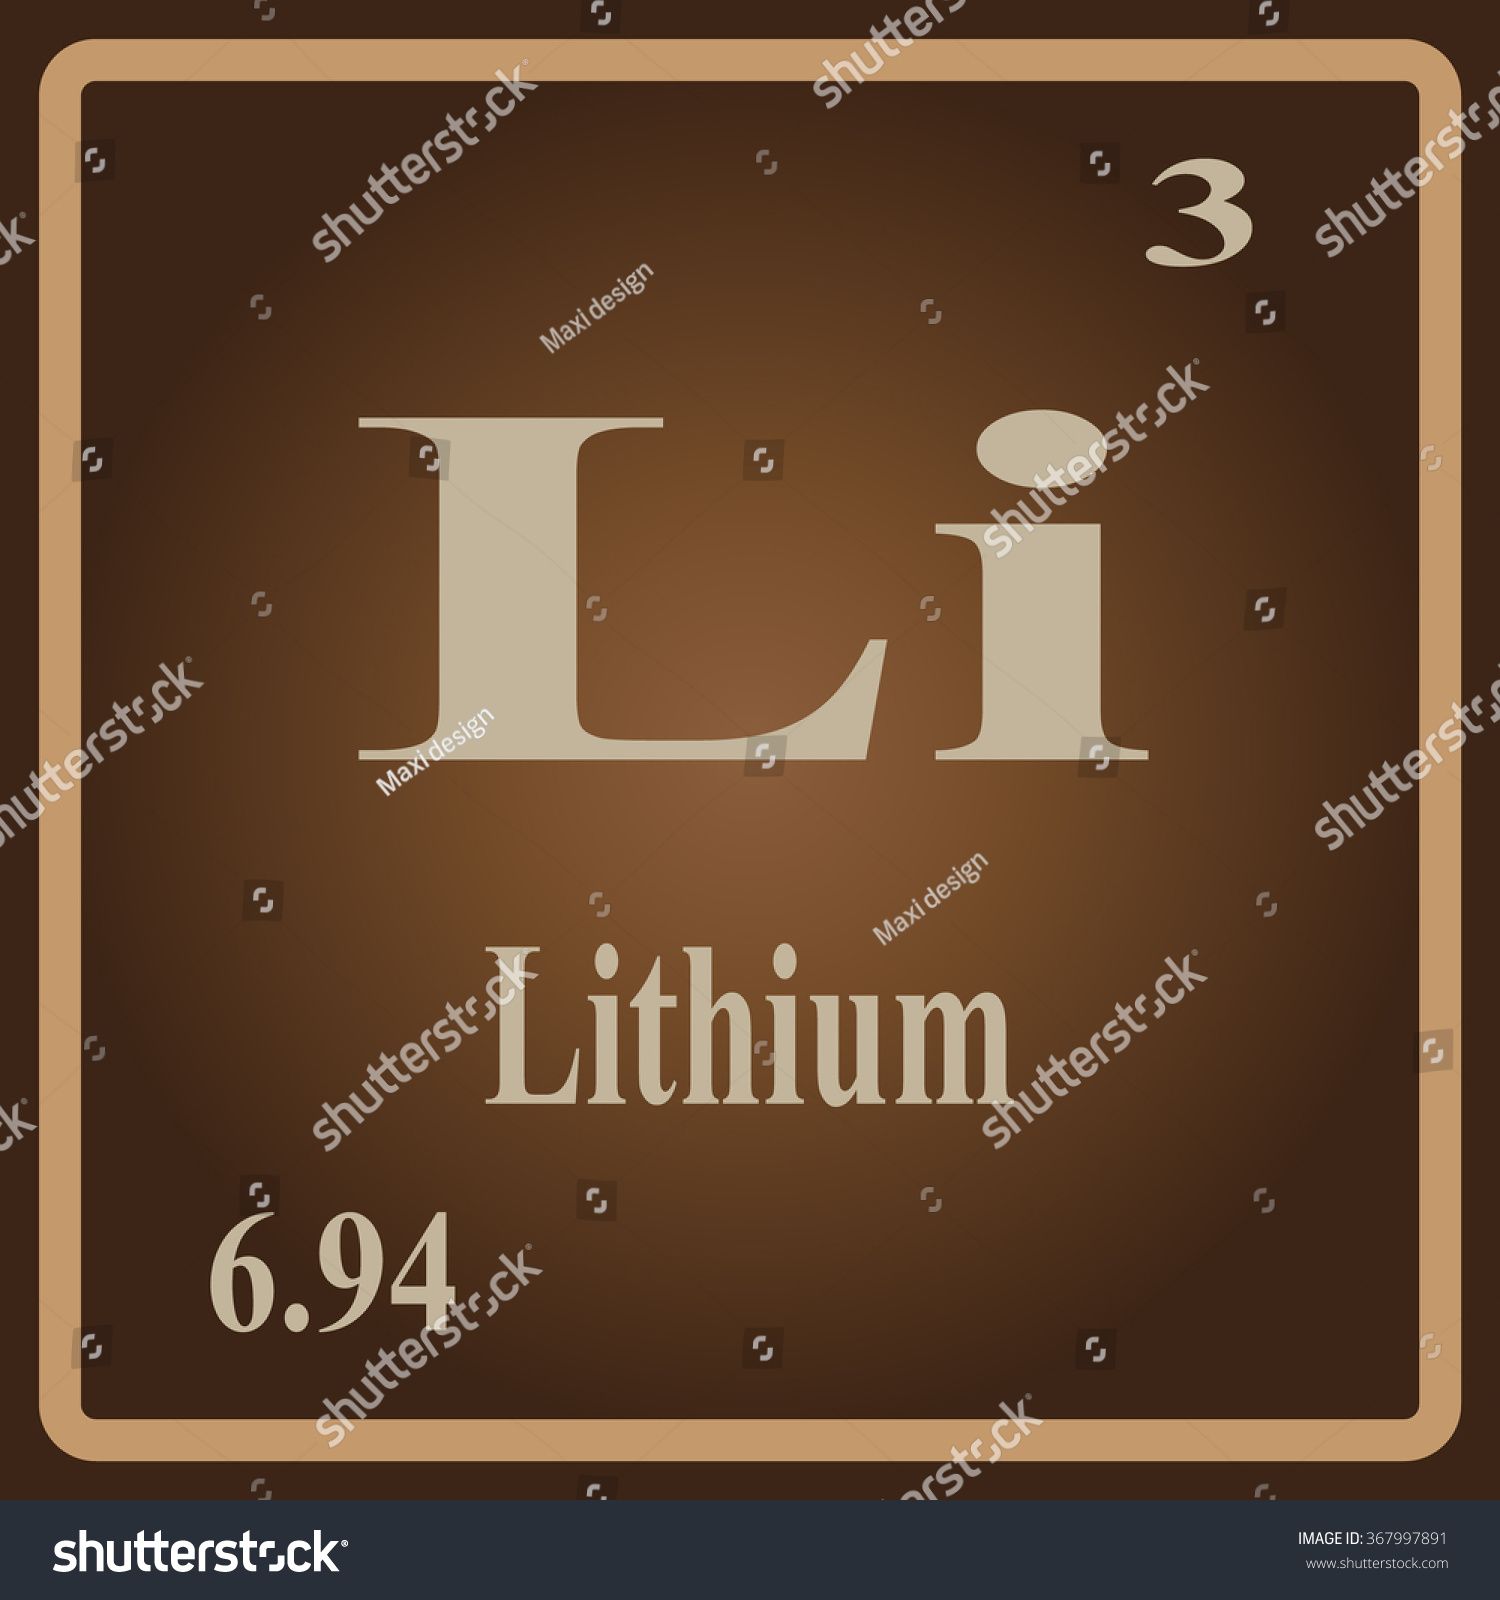 Iridium symbol periodic table choice image periodic table images lithium periodic table facts images periodic table images periodic table of elements lithium choice image periodic gamestrikefo Image collections